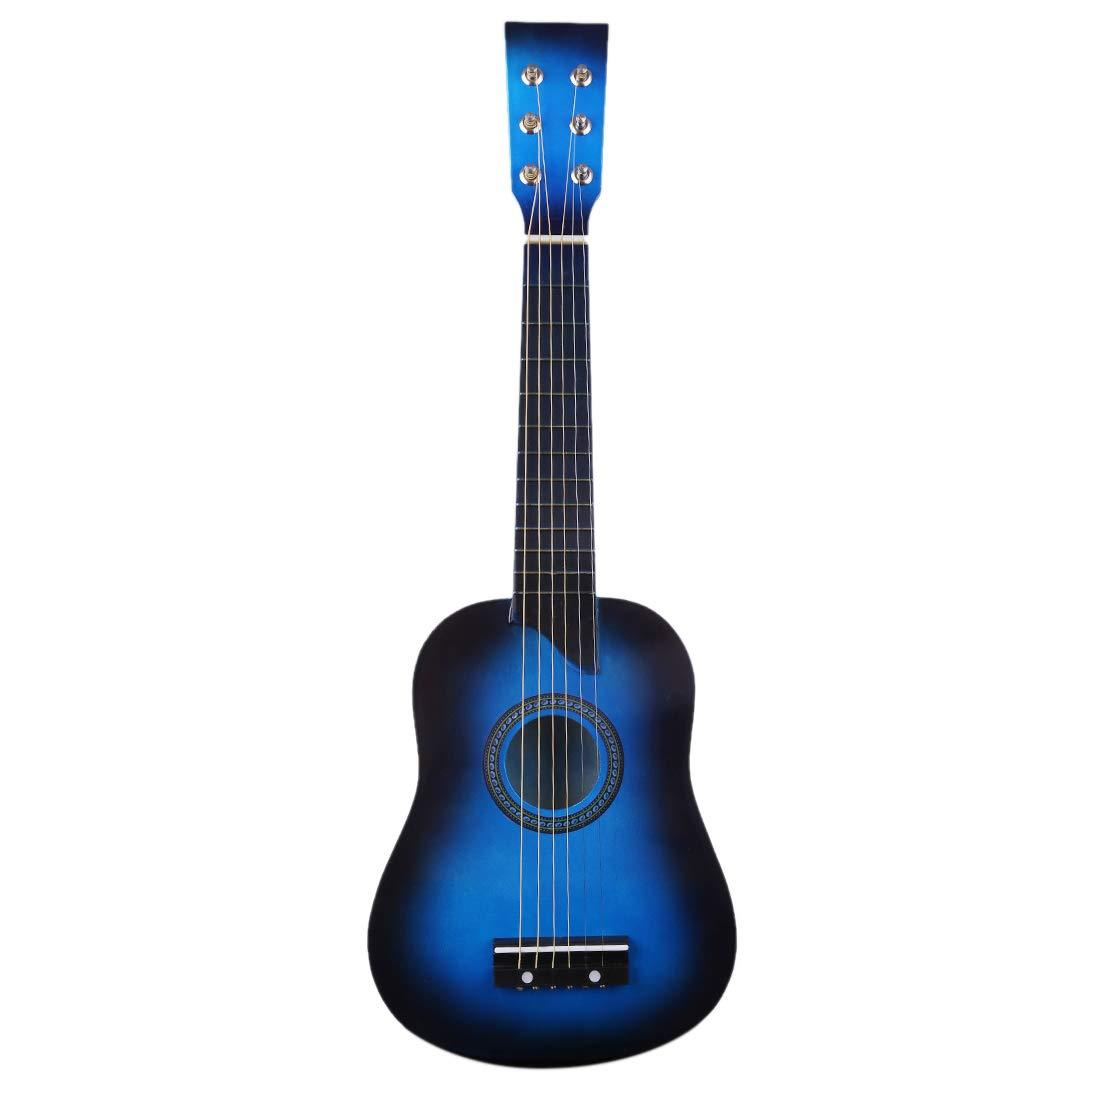 Electric Guitar Toys for Kids Musical Instruments Educational Toy Guitar for Beginners Kids Ages 3 4 5 6 7 8 9 10 11 12